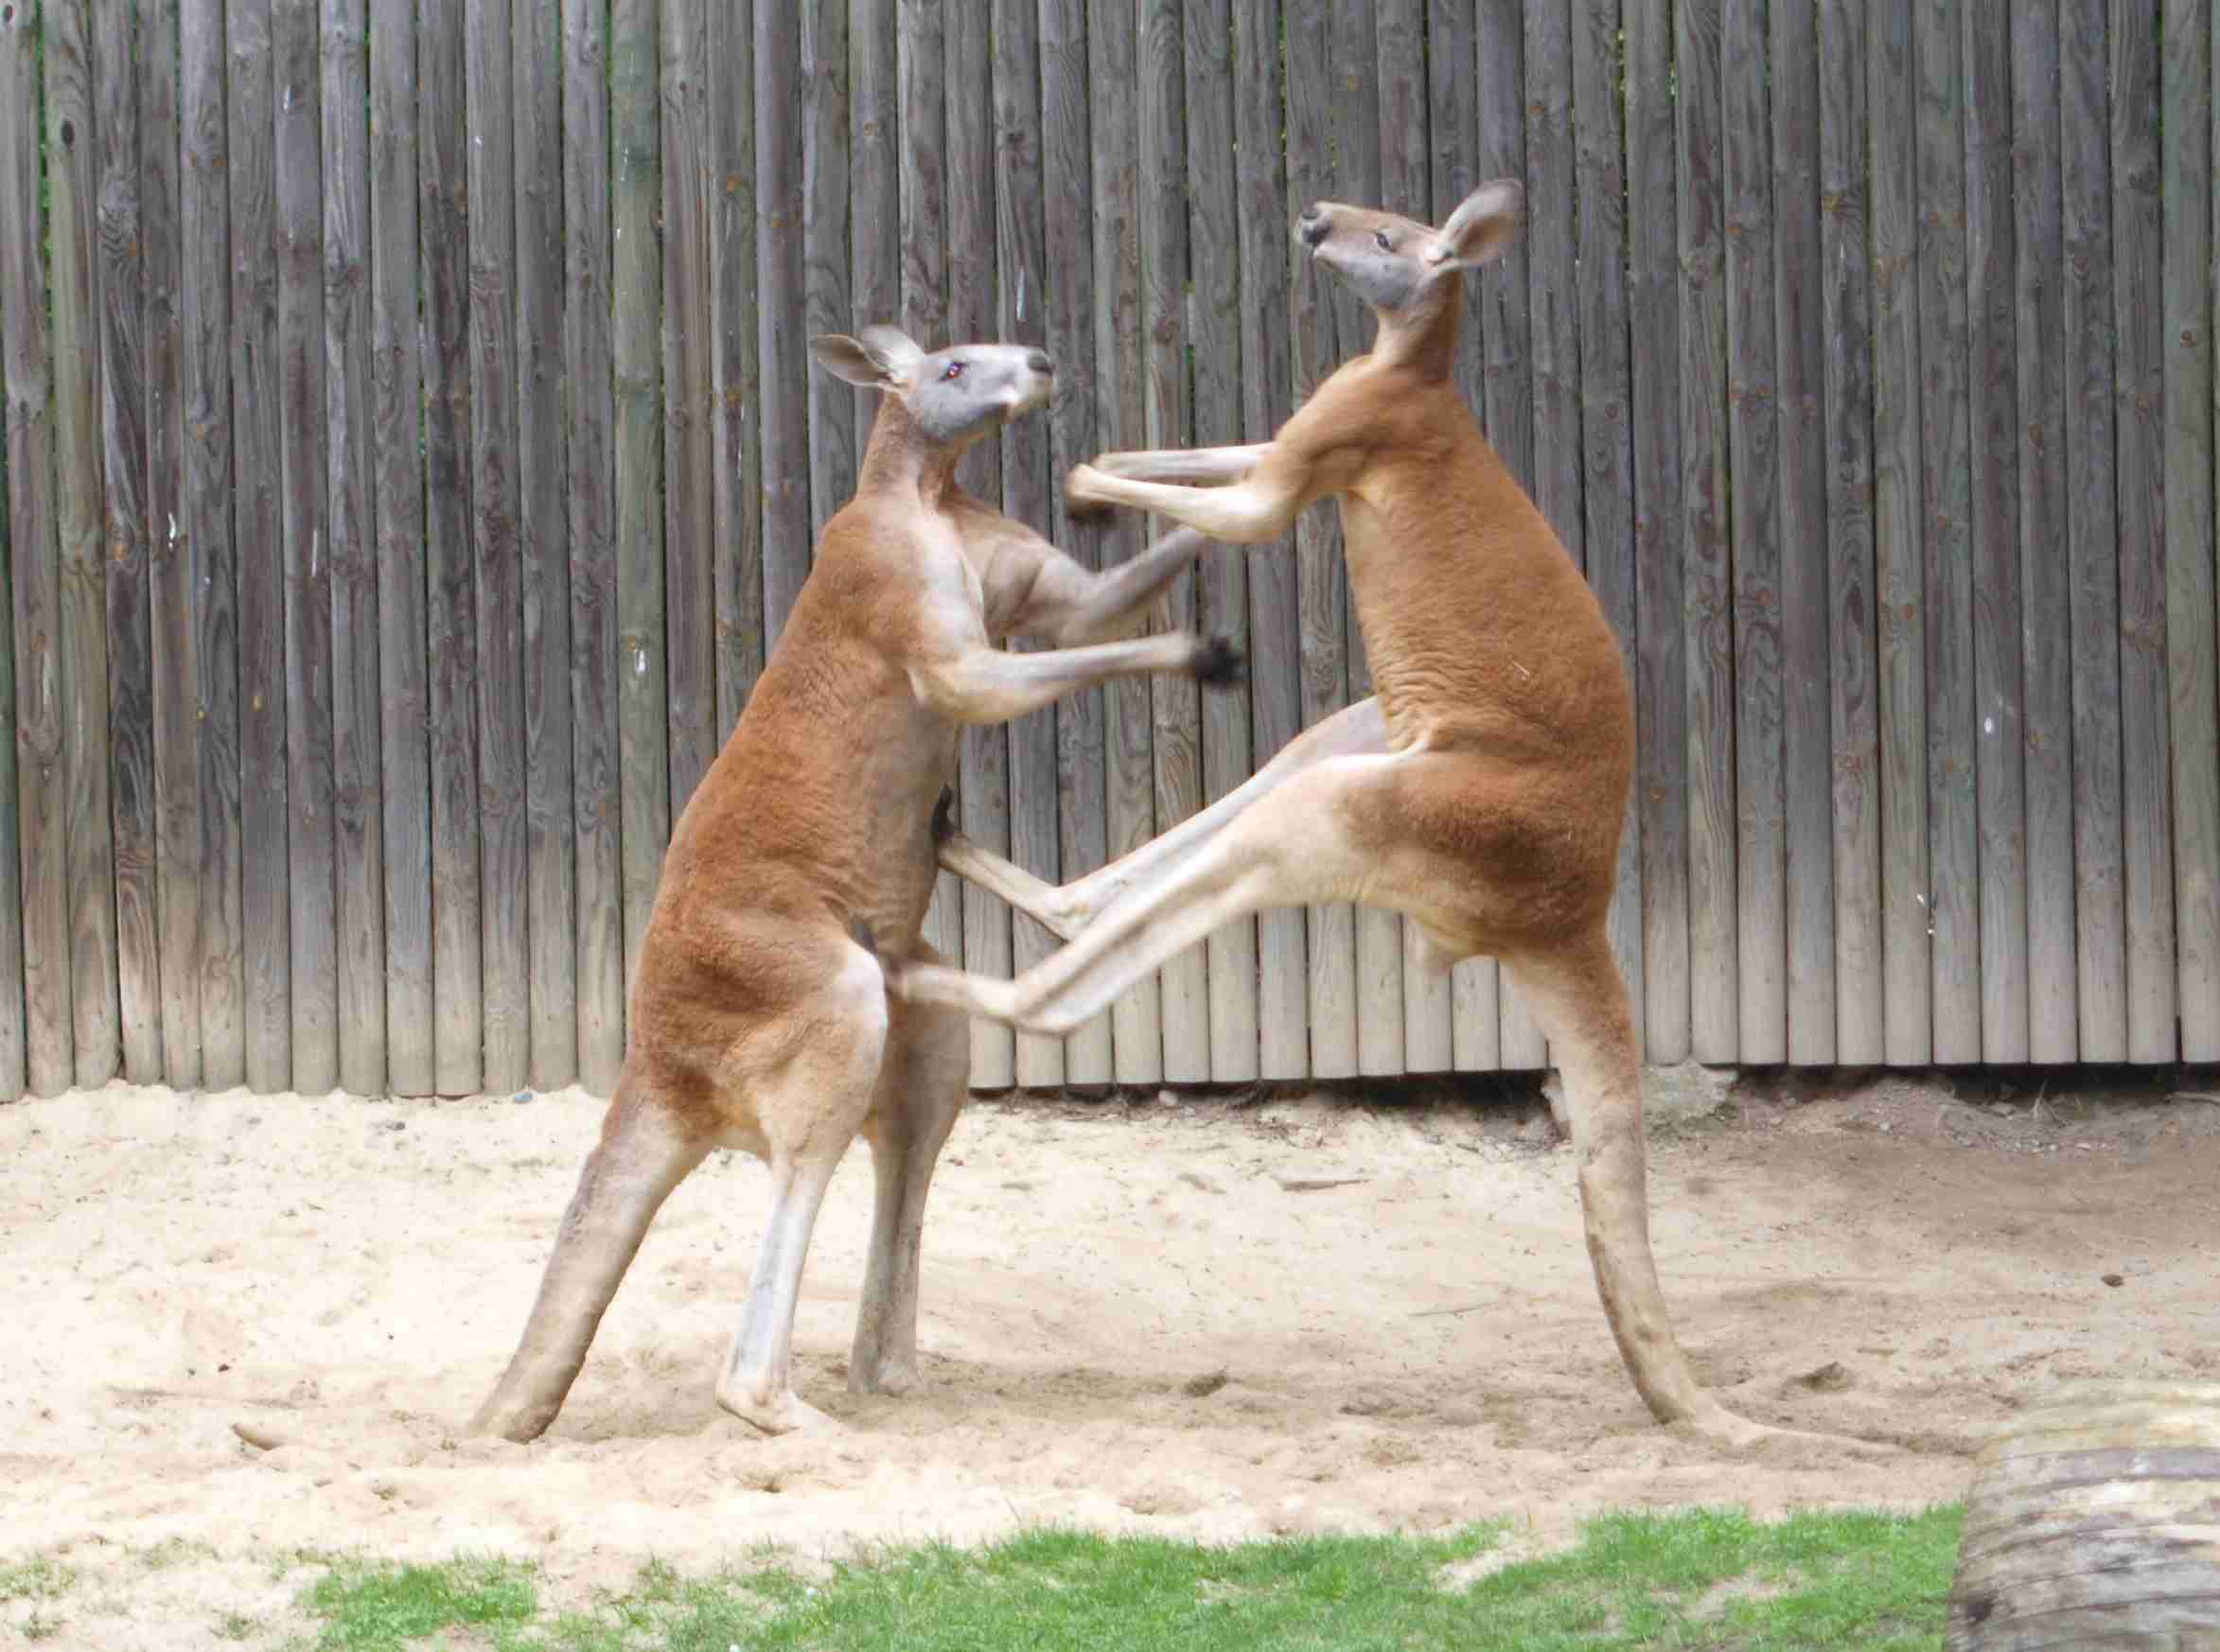 Two kangaroos fighting each other.